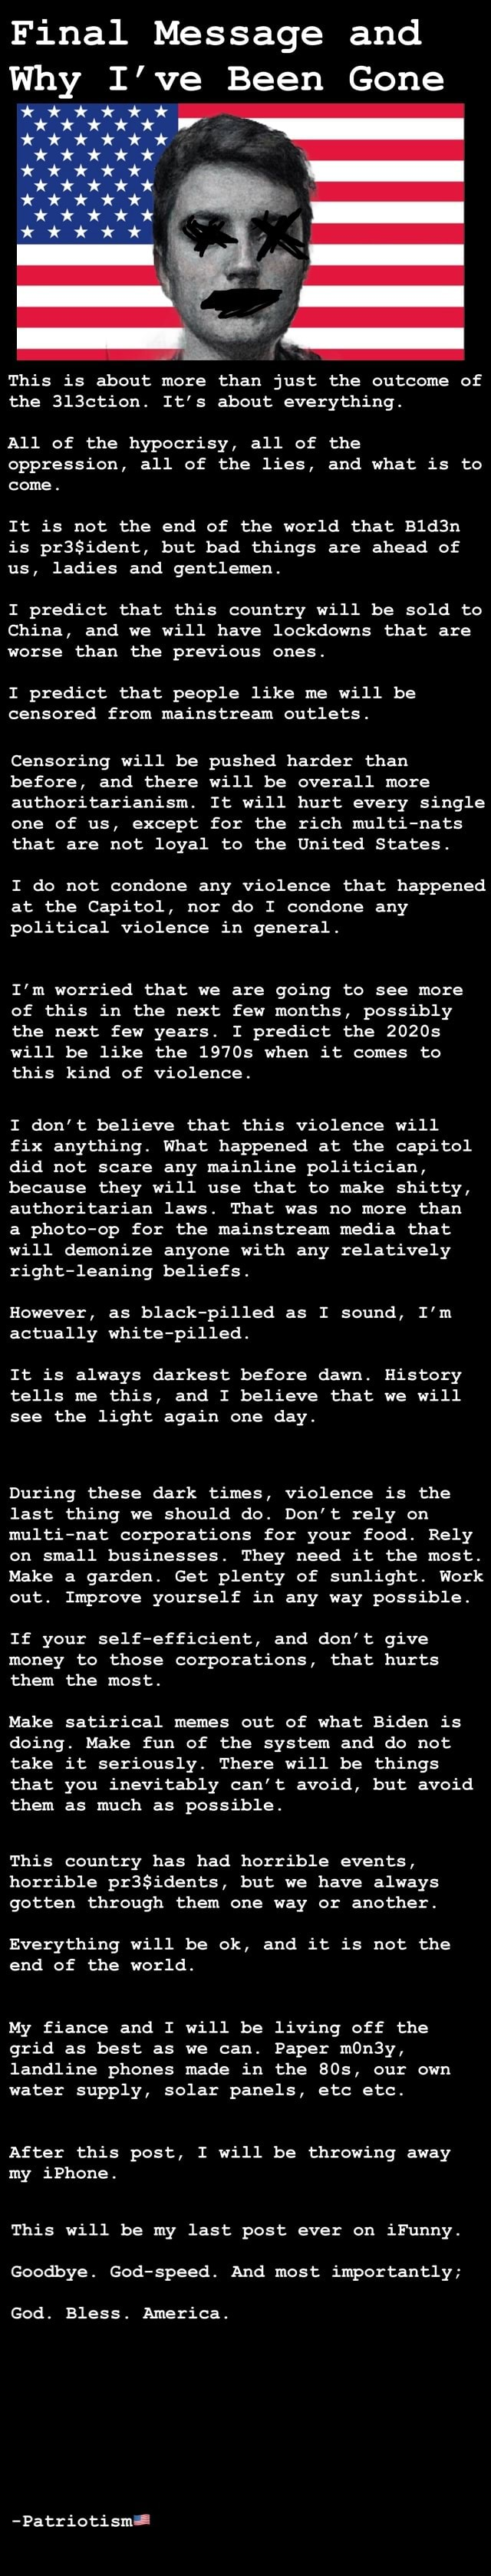 Final Message and Why I've Been Gone wow This is about more than just the outcome of the 313ction. It's about everything. All of the hypocrisy, all of the oppression, all of the lies, and what is to come. It is not the end of the world that Bld3n is but bad things are ahead of us, ladies and gentlemen. I predict that this country will be sold to China, and we will have lockdowns that are worse than the previous ones. I predict that people like me will be censored from mainstream outlets. Censoring will be pushed harder than before, and there will be overall more authoritarianism. It will hurt every single one of us, except for the rich multi nats that are not loyal to the United States. I do not condone any violence that happened at the Capitol, nor do I condone any political violence in g